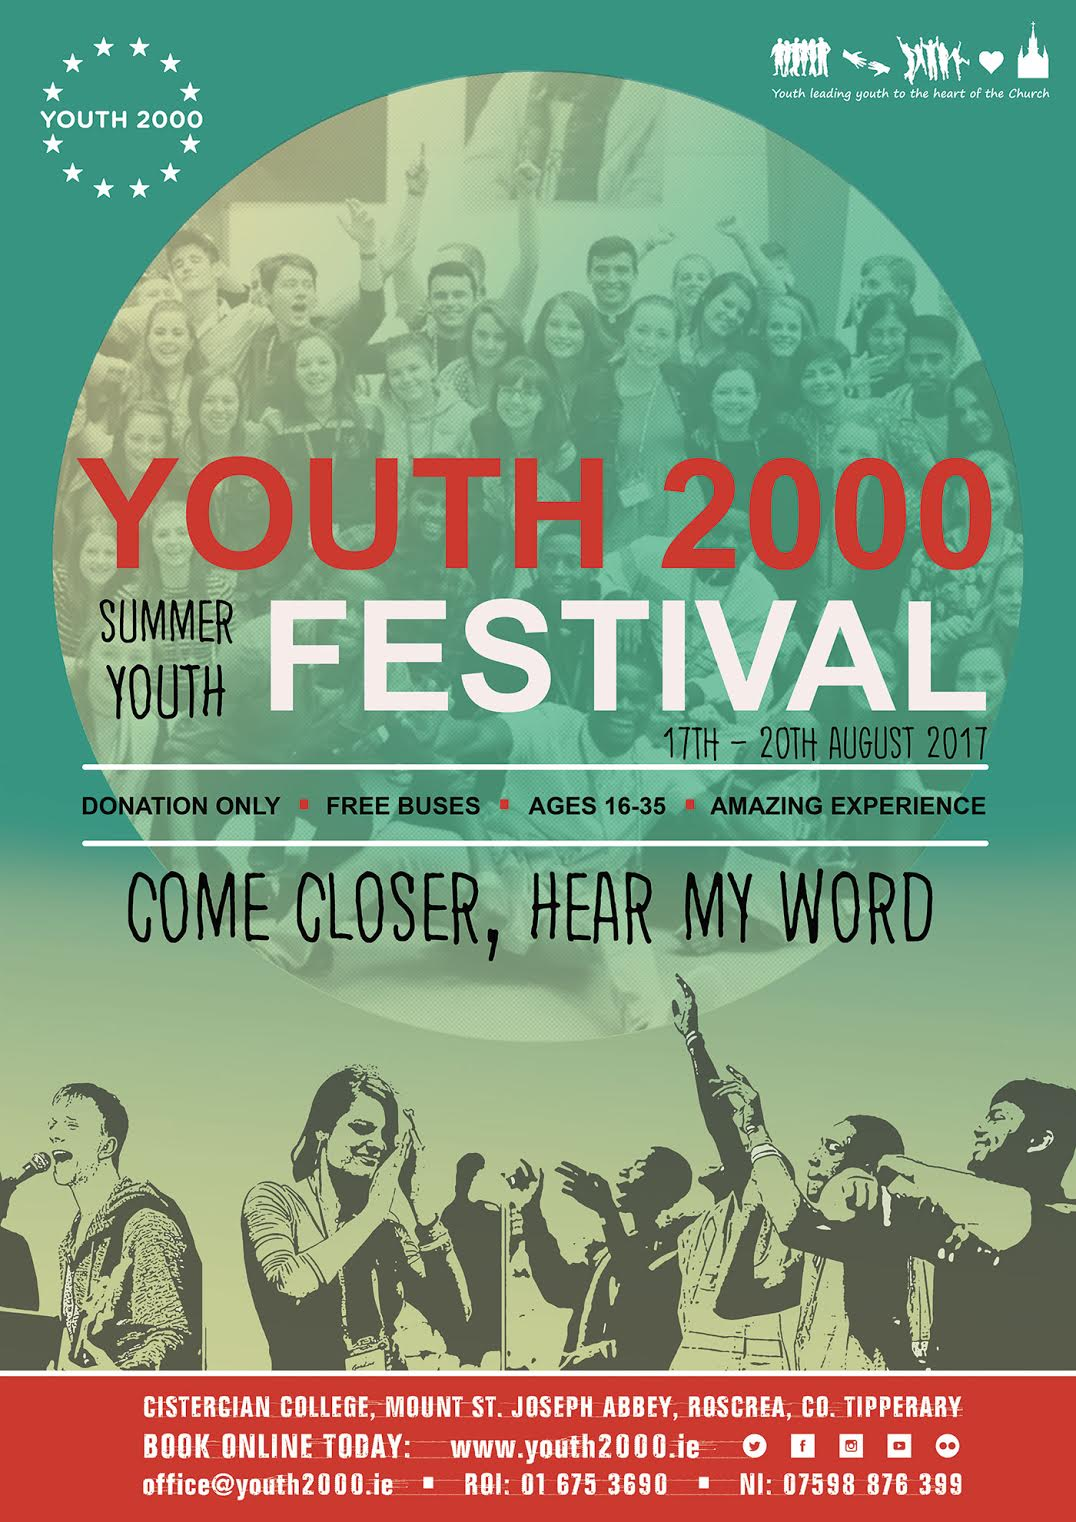 Youth-2000-Summer-Festival-2017-Poster